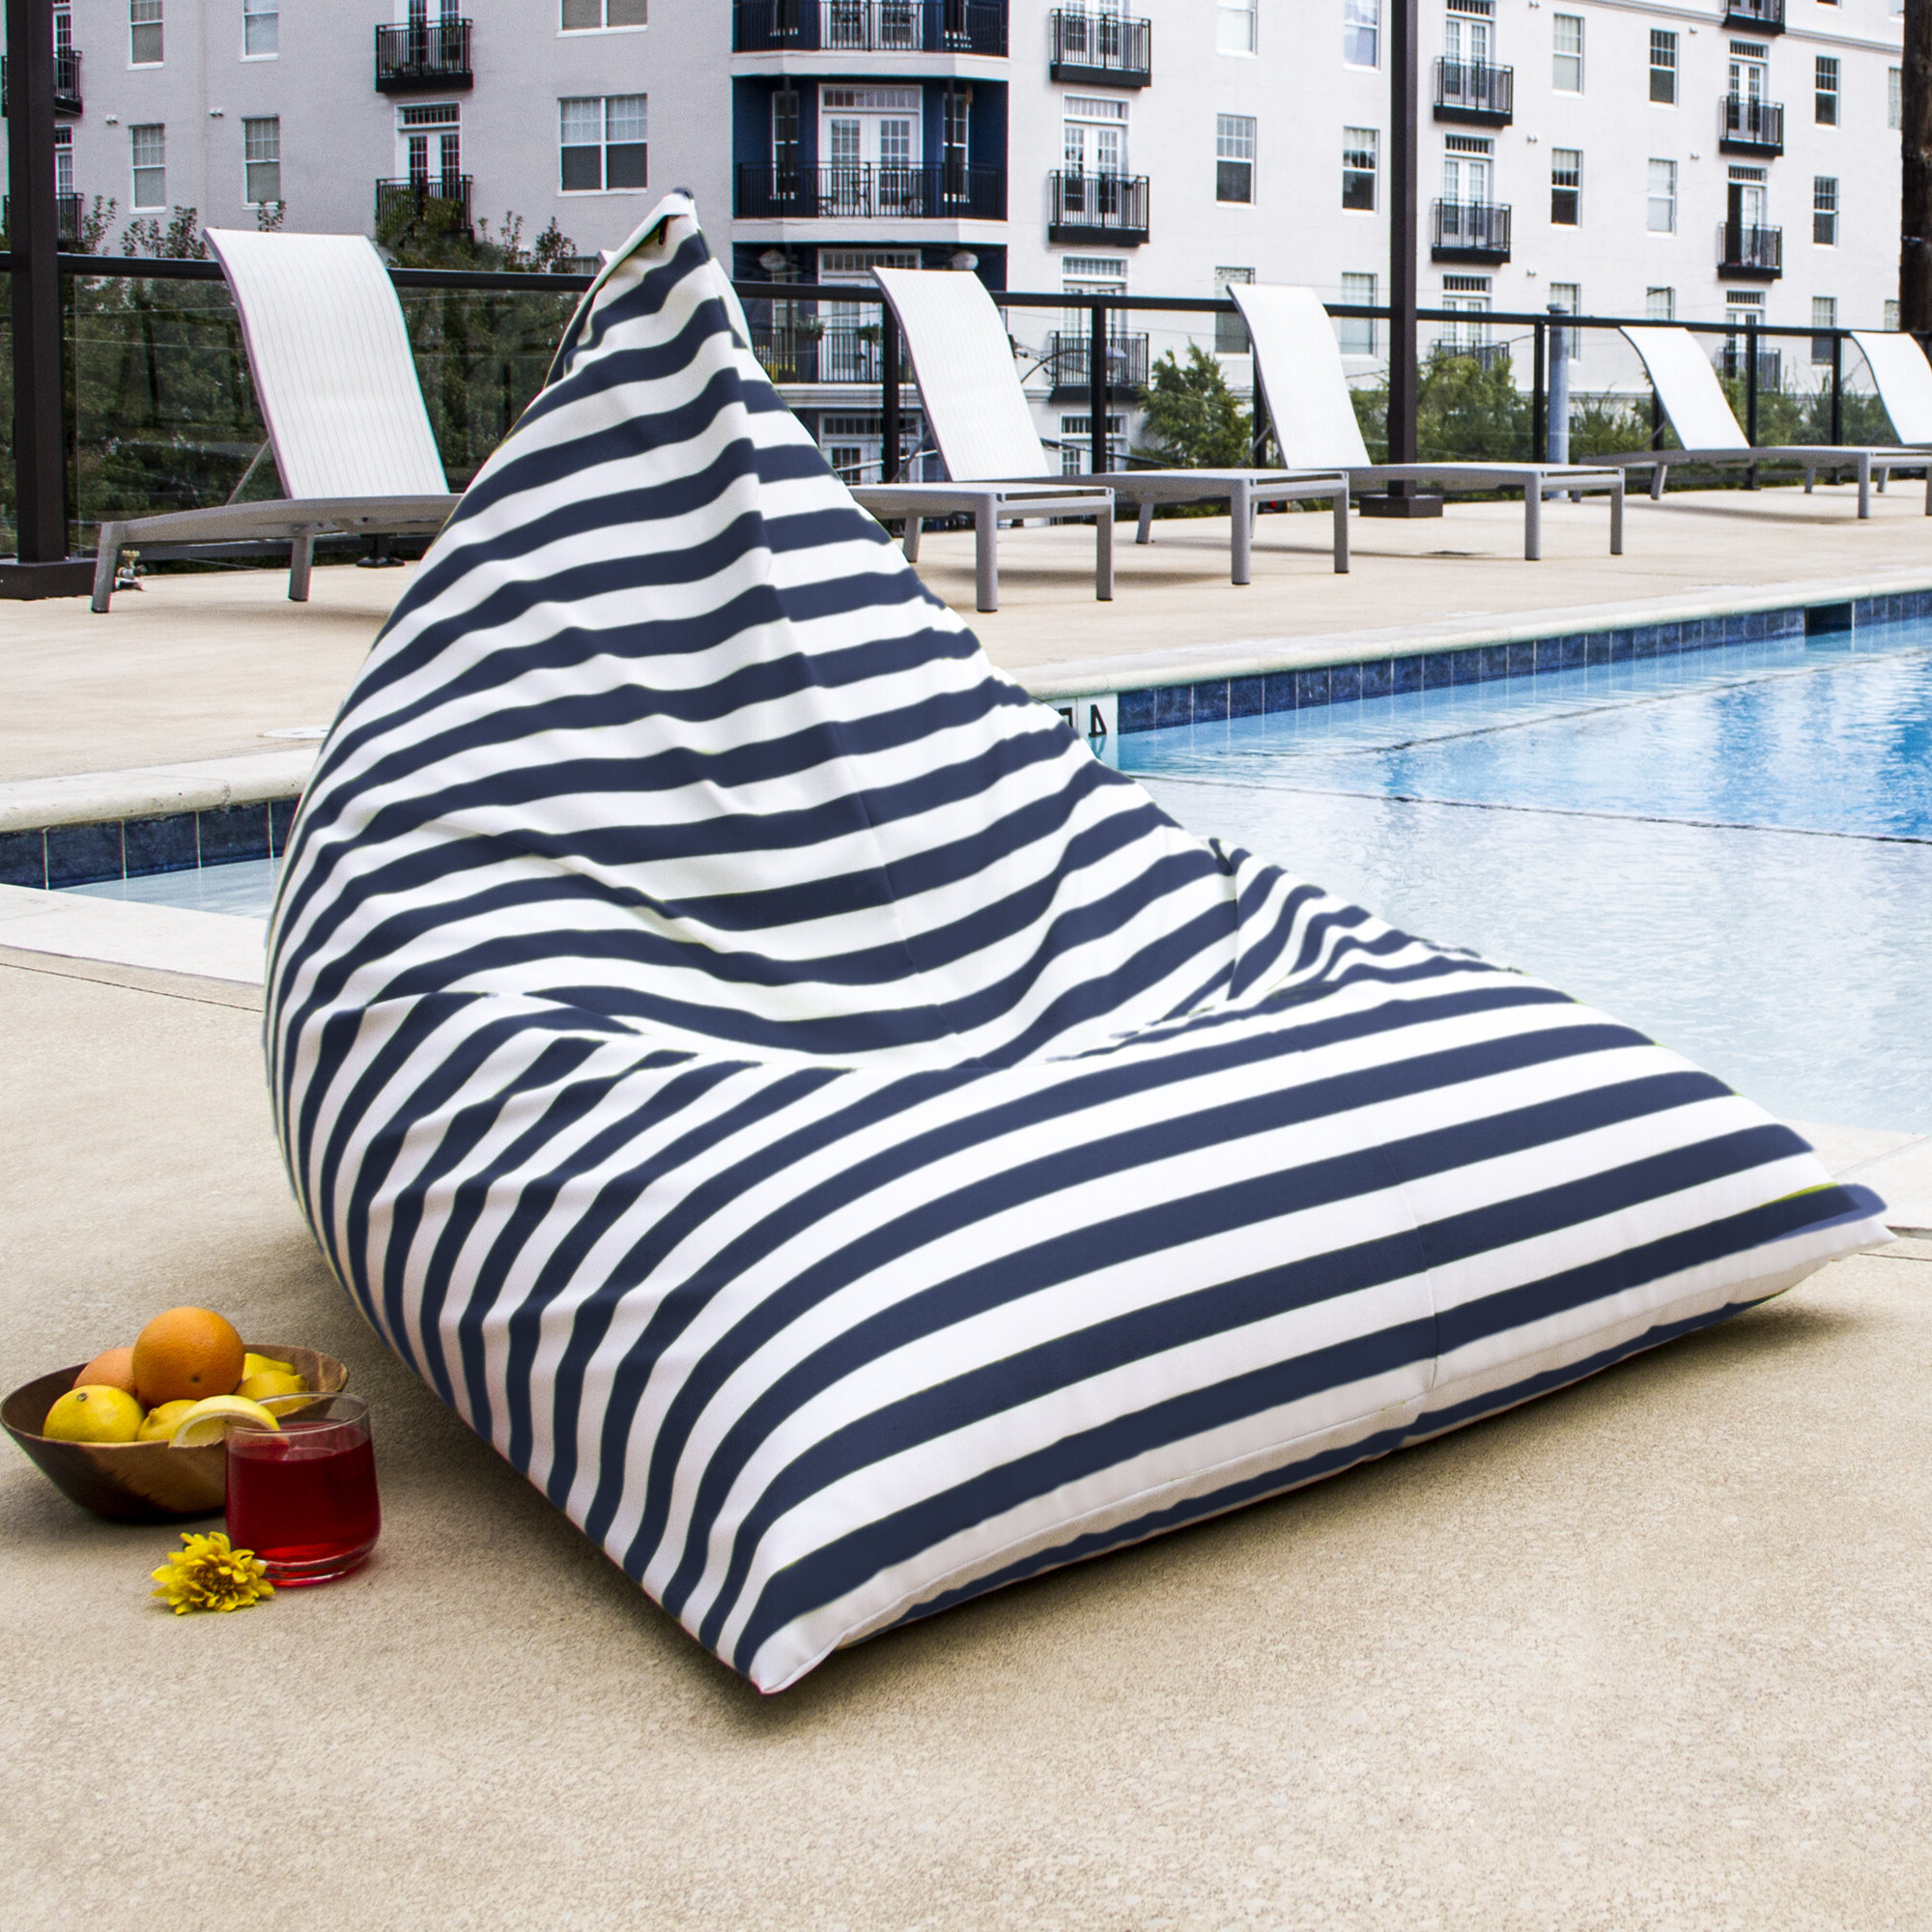 Newest Jaxx Ponce Outdoor Bean Bag Patio Chairs Within Twist Outdoor Bean Bag Chair (View 24 of 25)